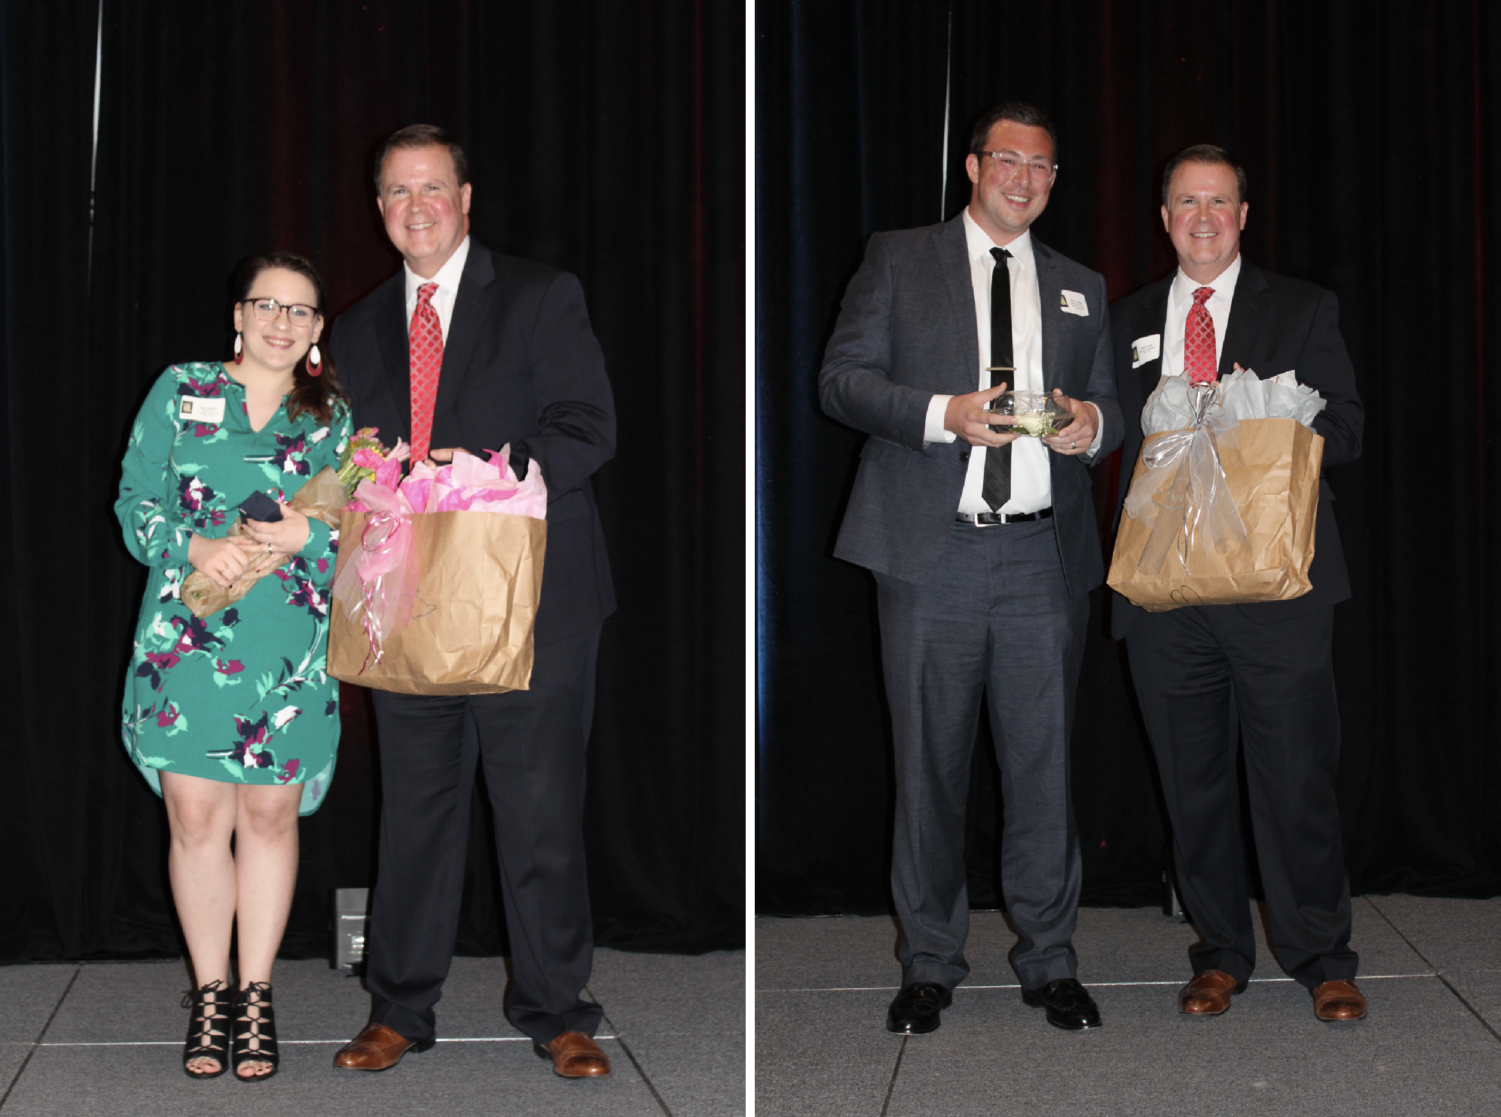 Mrs. Mollick of Coppell Middle School North  and Mr. Hanson of Wilson Elementary receive awards and recognition for their Teacher of the Year accomplishment at the Coppell ISD Education Foundation Banquet